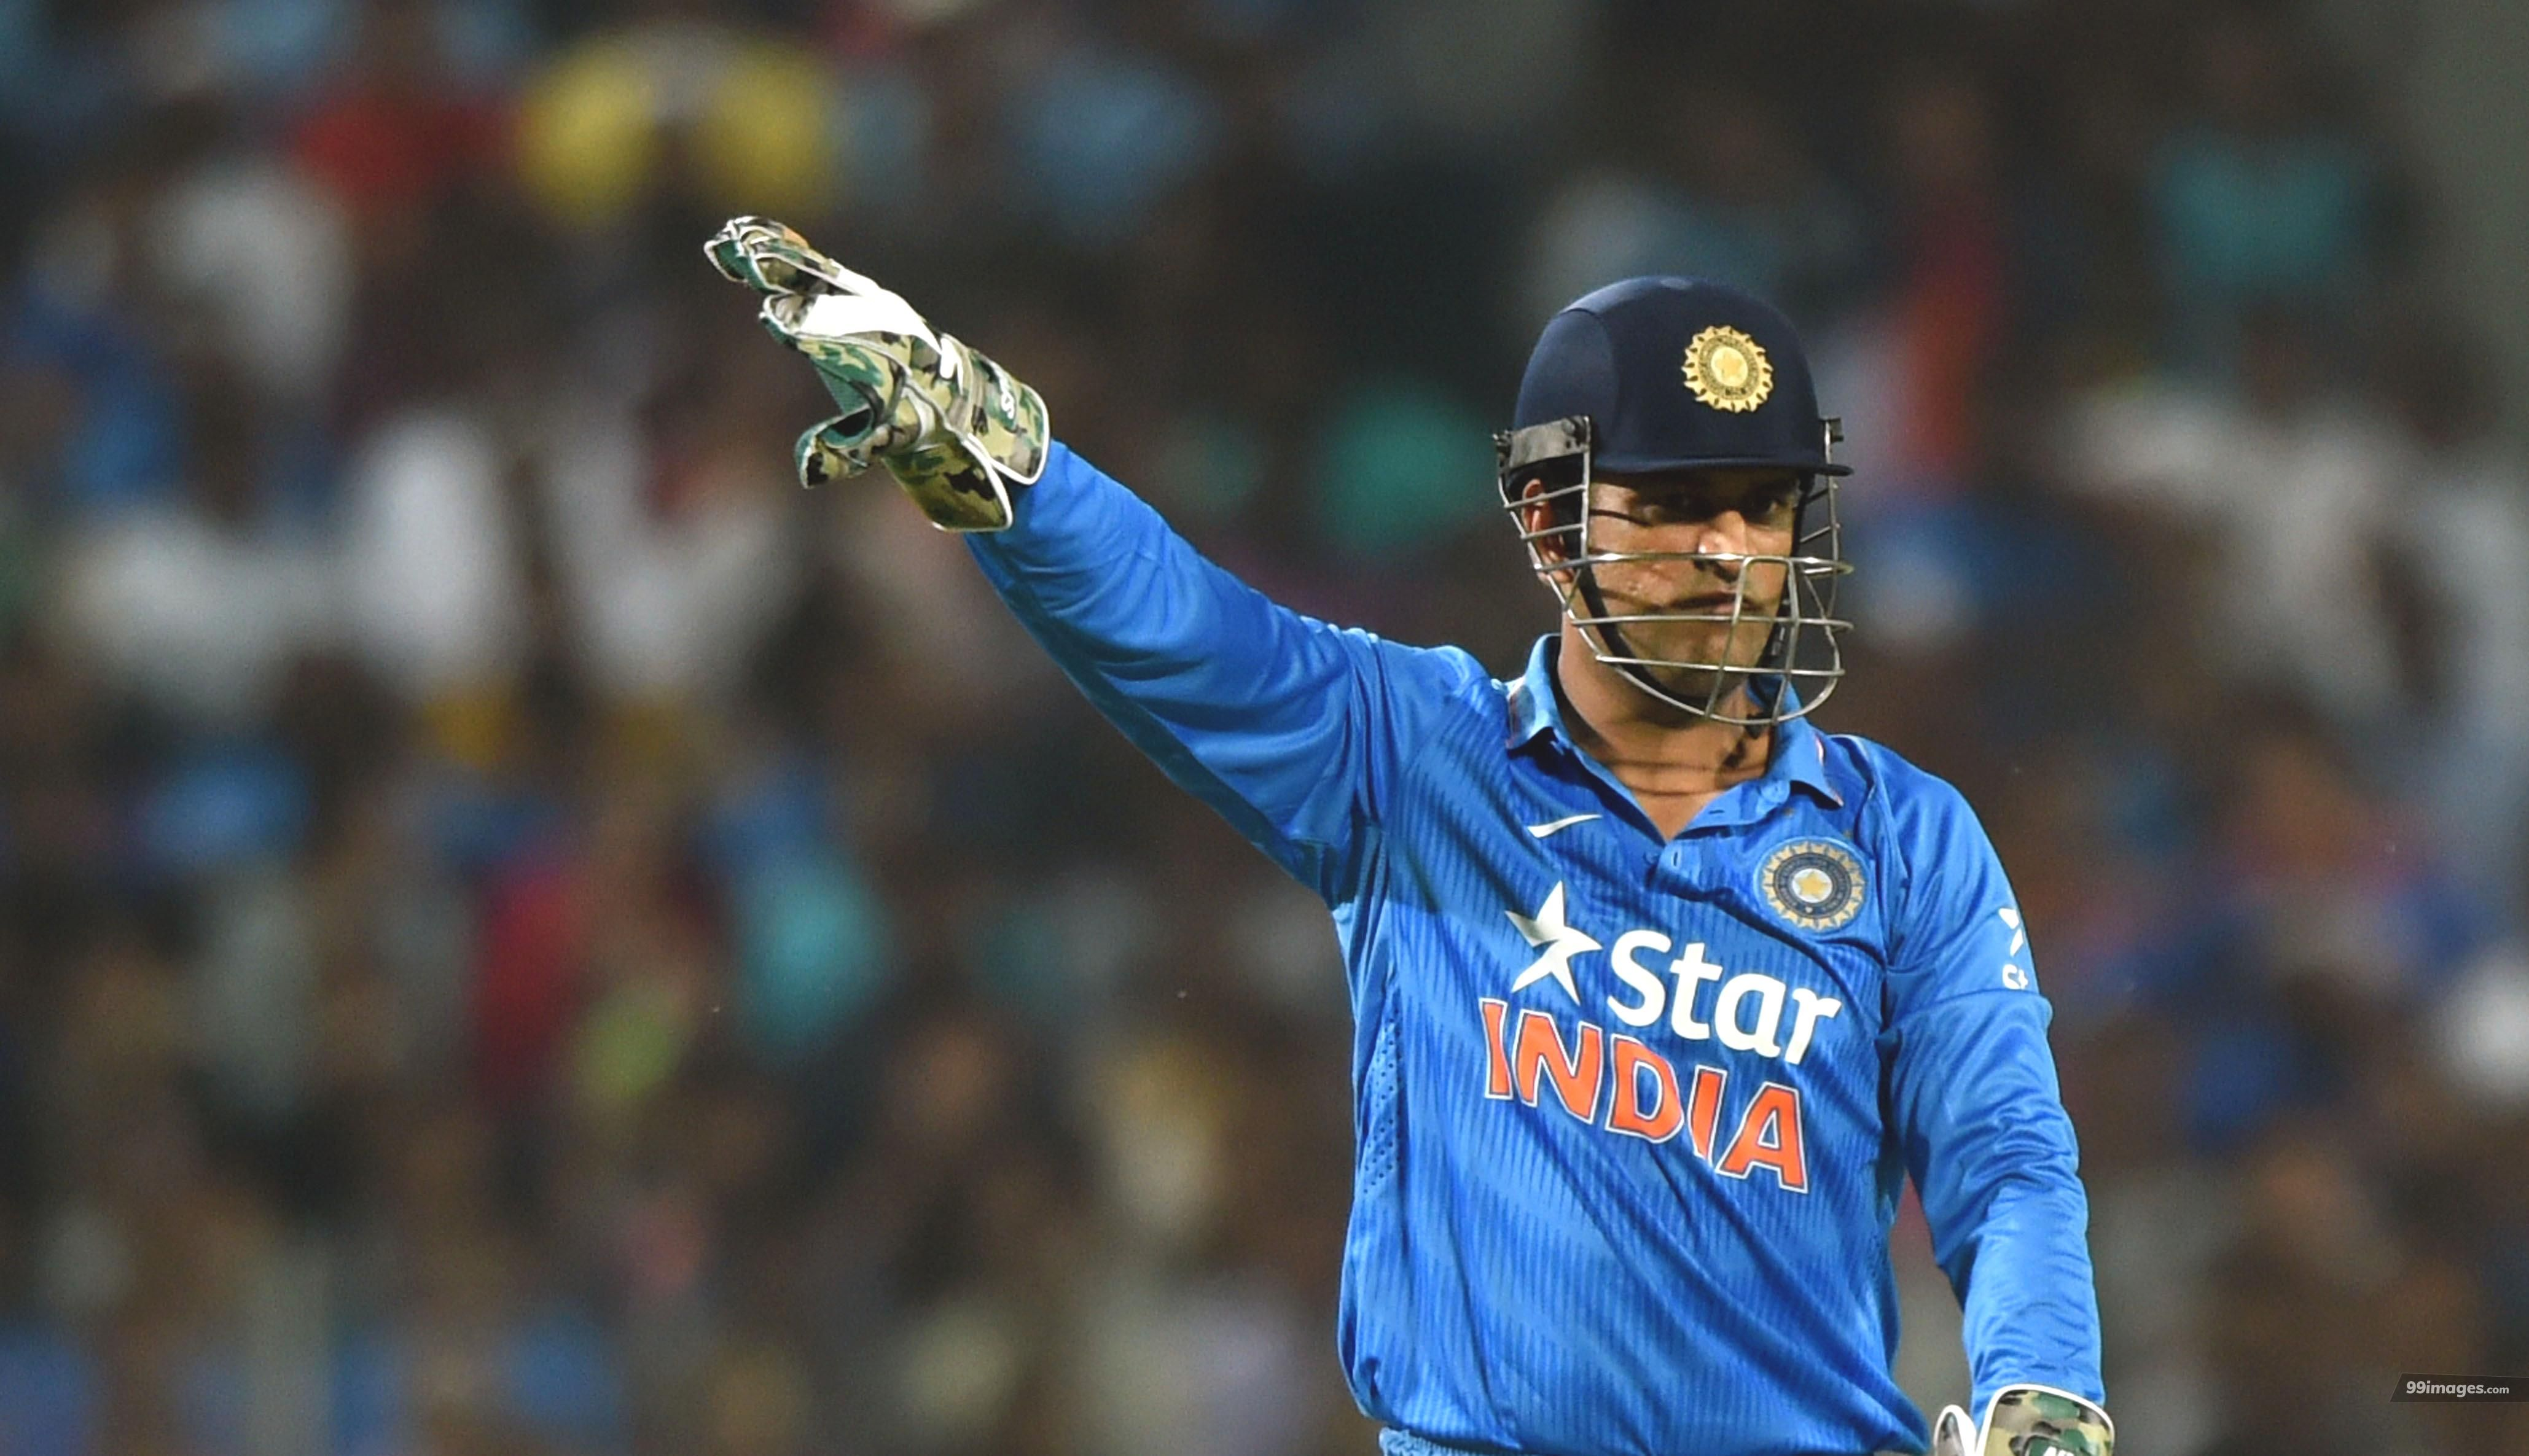 265 Ms Dhoni Images Hd Photos 1080p Wallpapers Android Iphone 2020 Dhoni Wallpapers Ms Dhoni Wallpapers Hd Photos